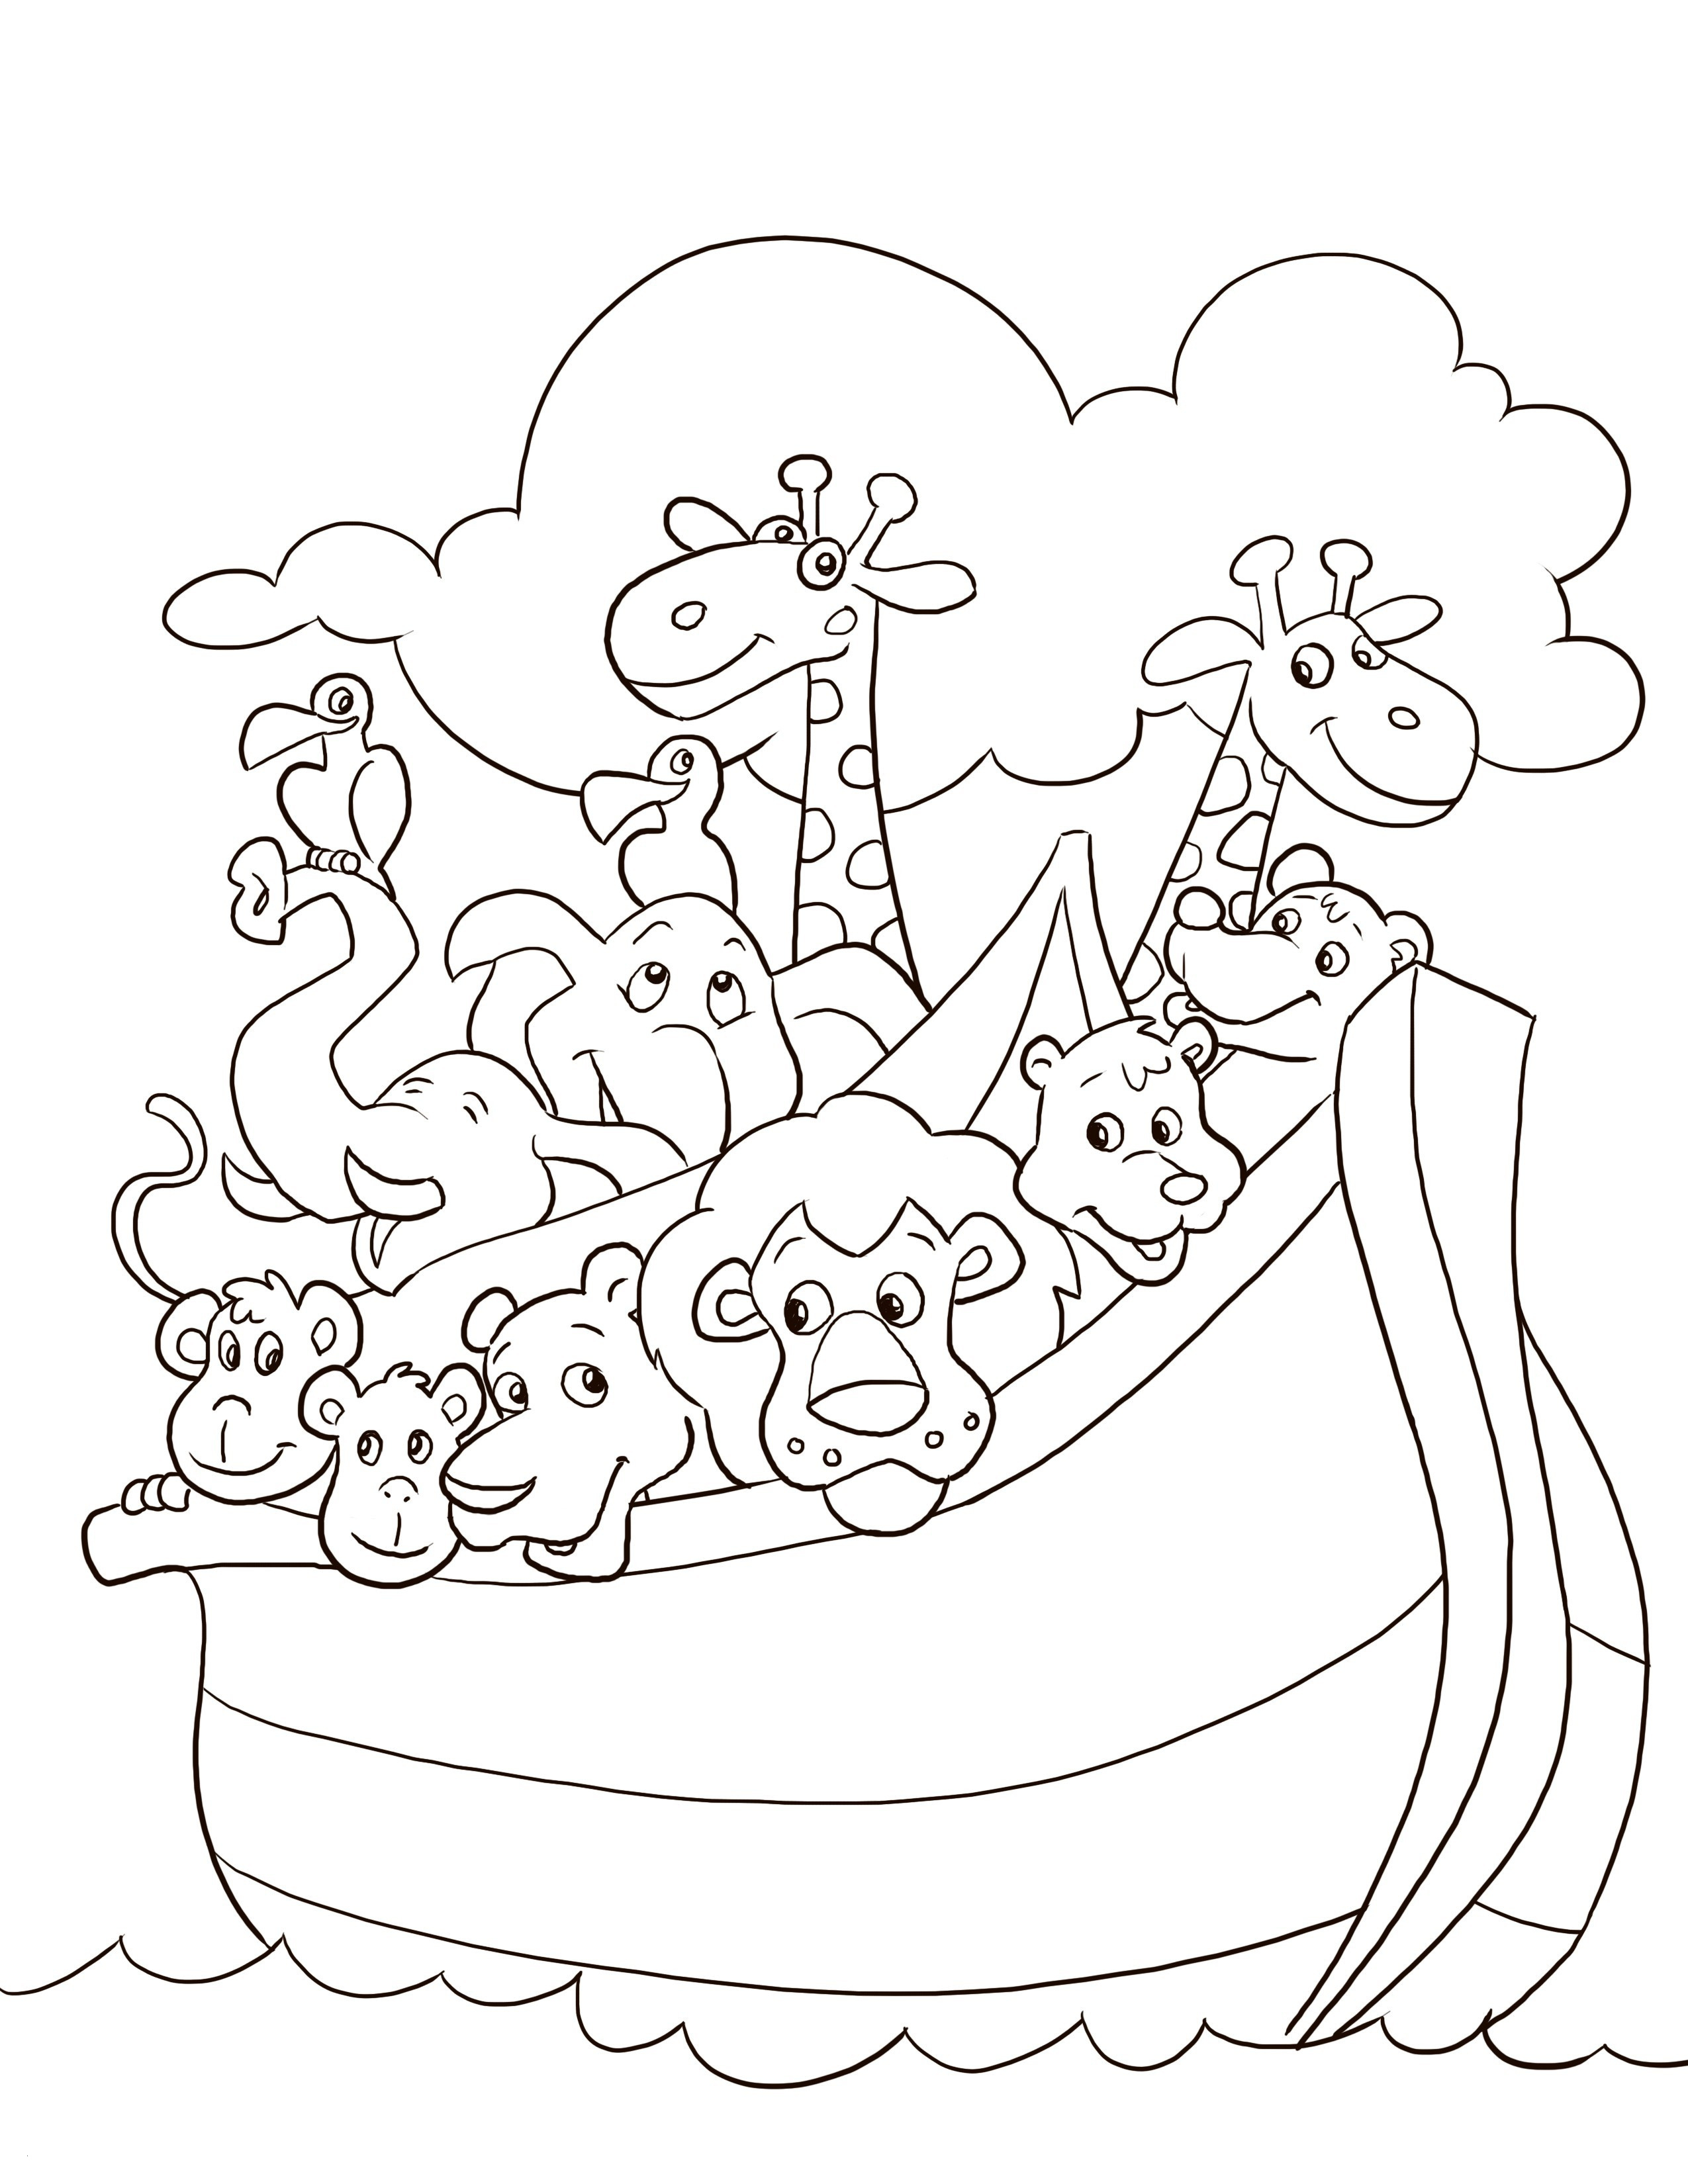 Christian Coloring Pages For Kids | Teamshania : Content - Free Printable Christian Coloring Pages